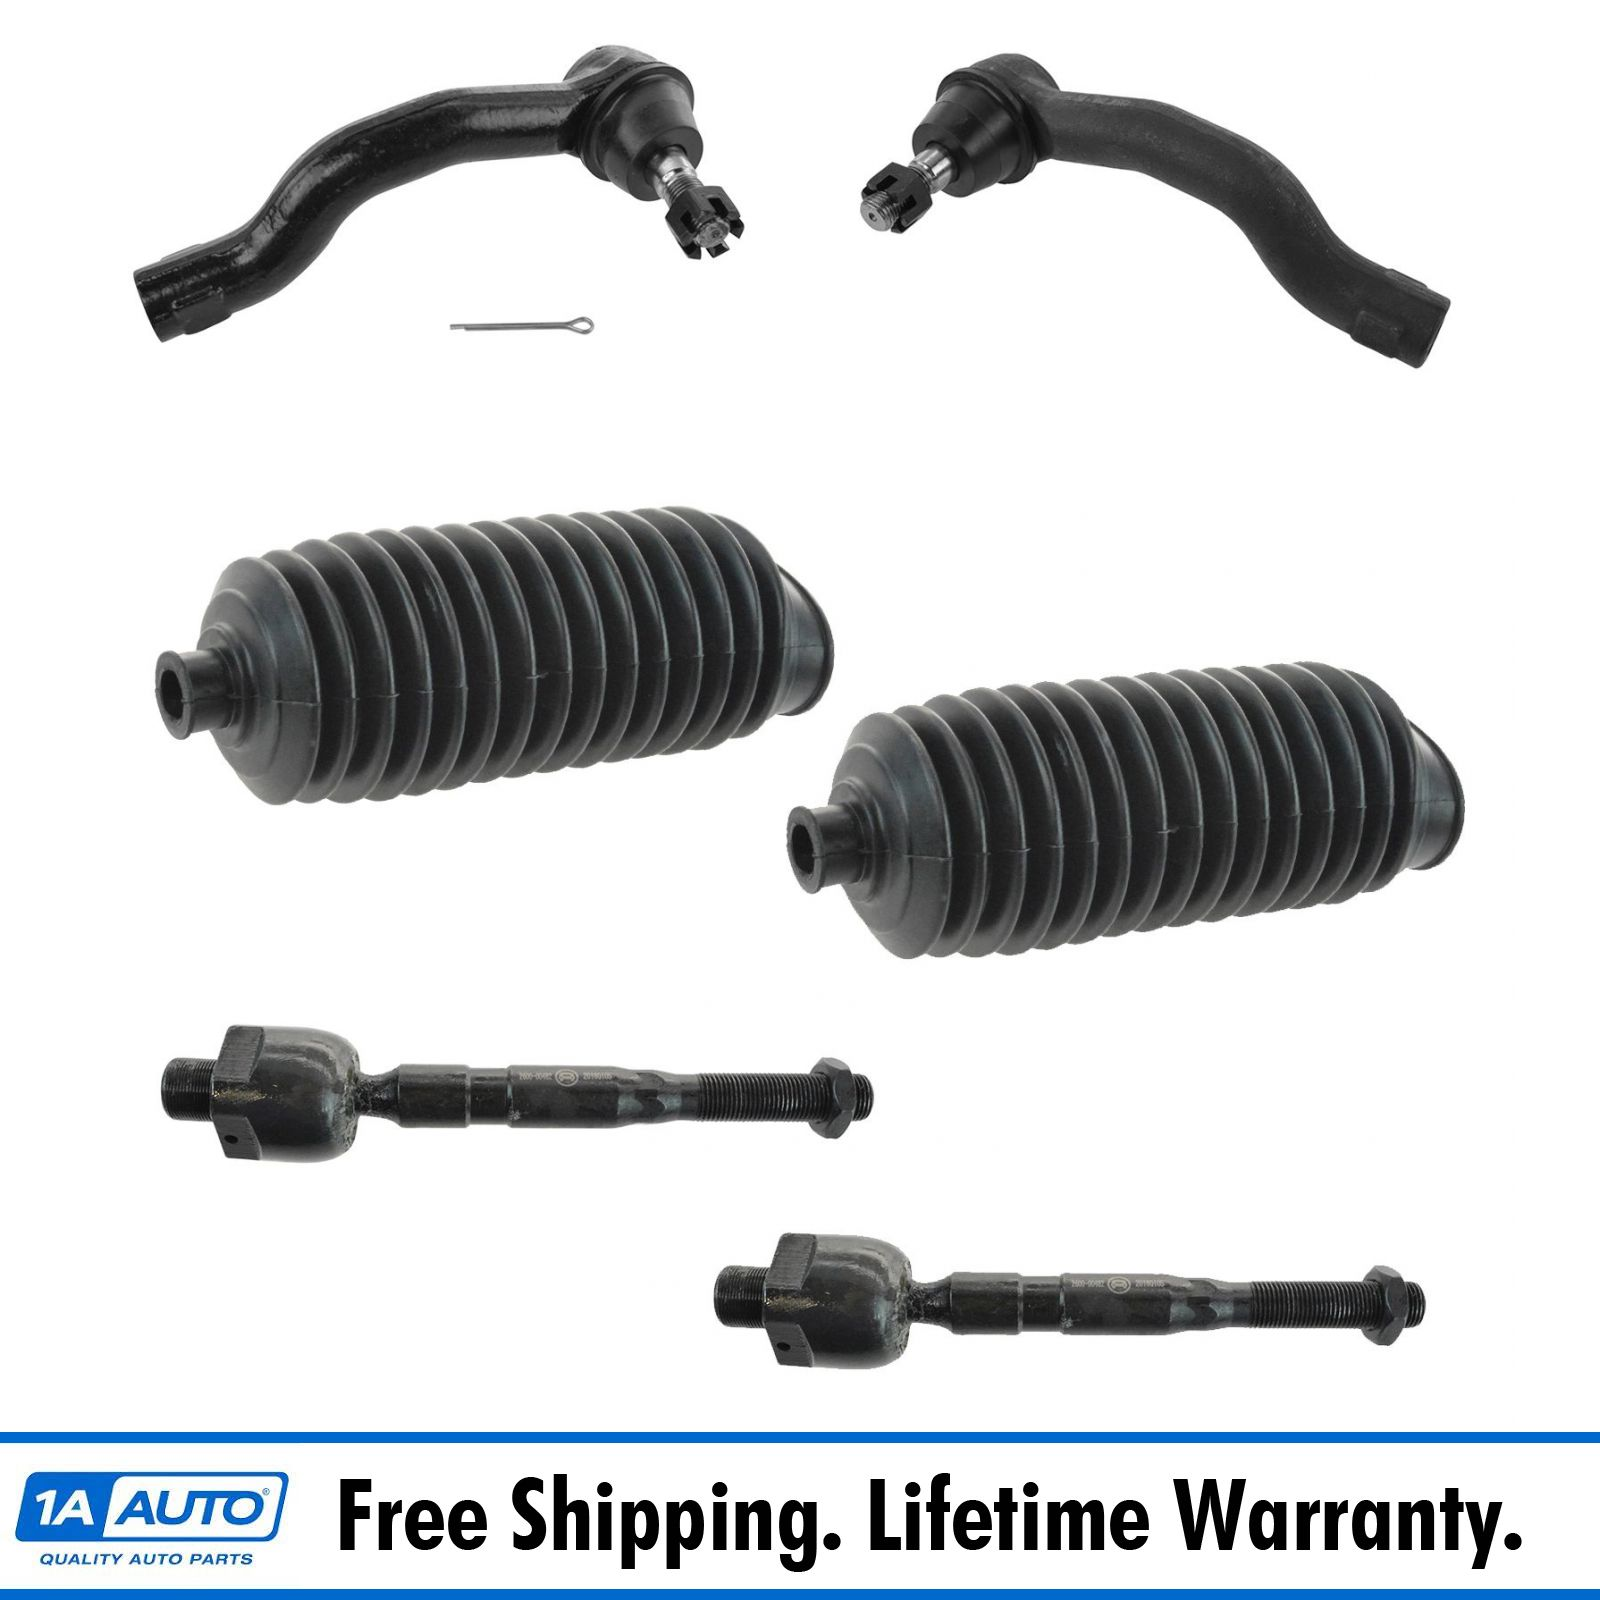 PartsW 6 Pc Front Outer Inner Tie Rod End Bellow Boots Steering Kit for Nissan Frontier Nissan Pathfinder Nissan Xterra